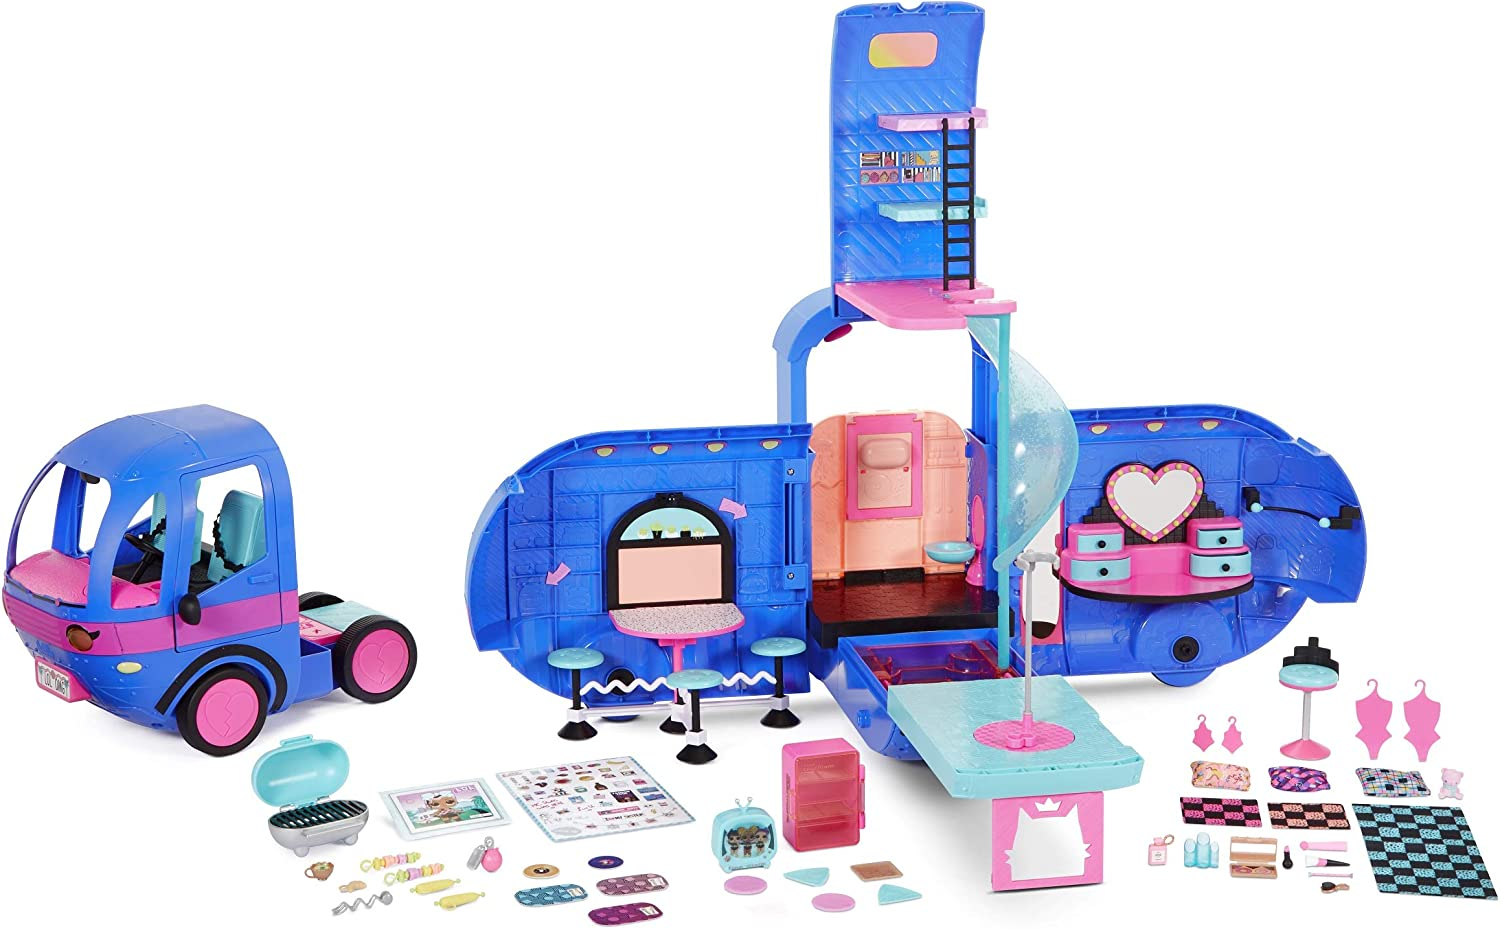 Amazon Com L O L Surprise O M G 4 In 1 Glamper Fashion Camper With 55 Surprises Electric Blue 569459 Toys Games